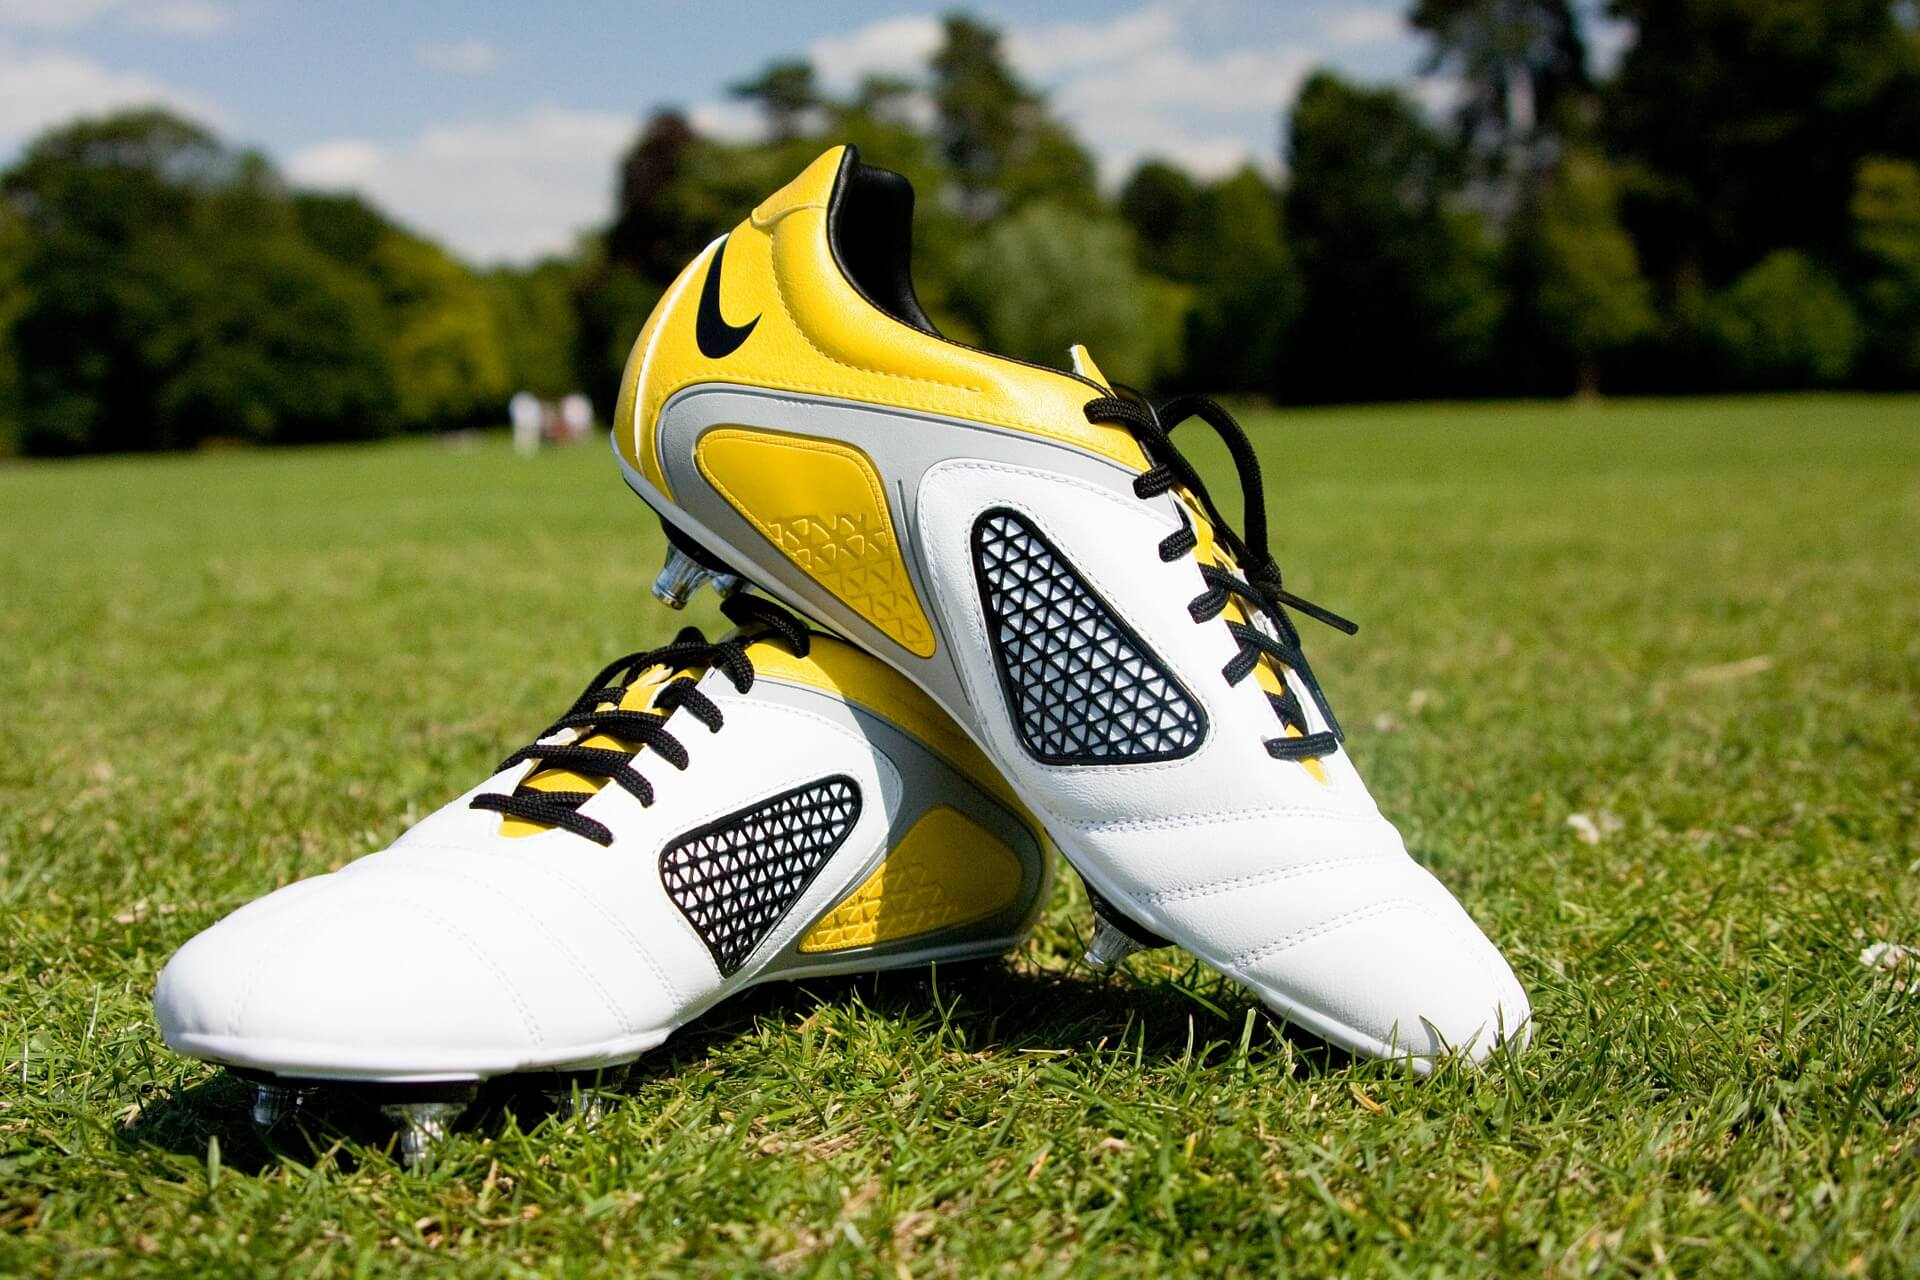 best footy boots